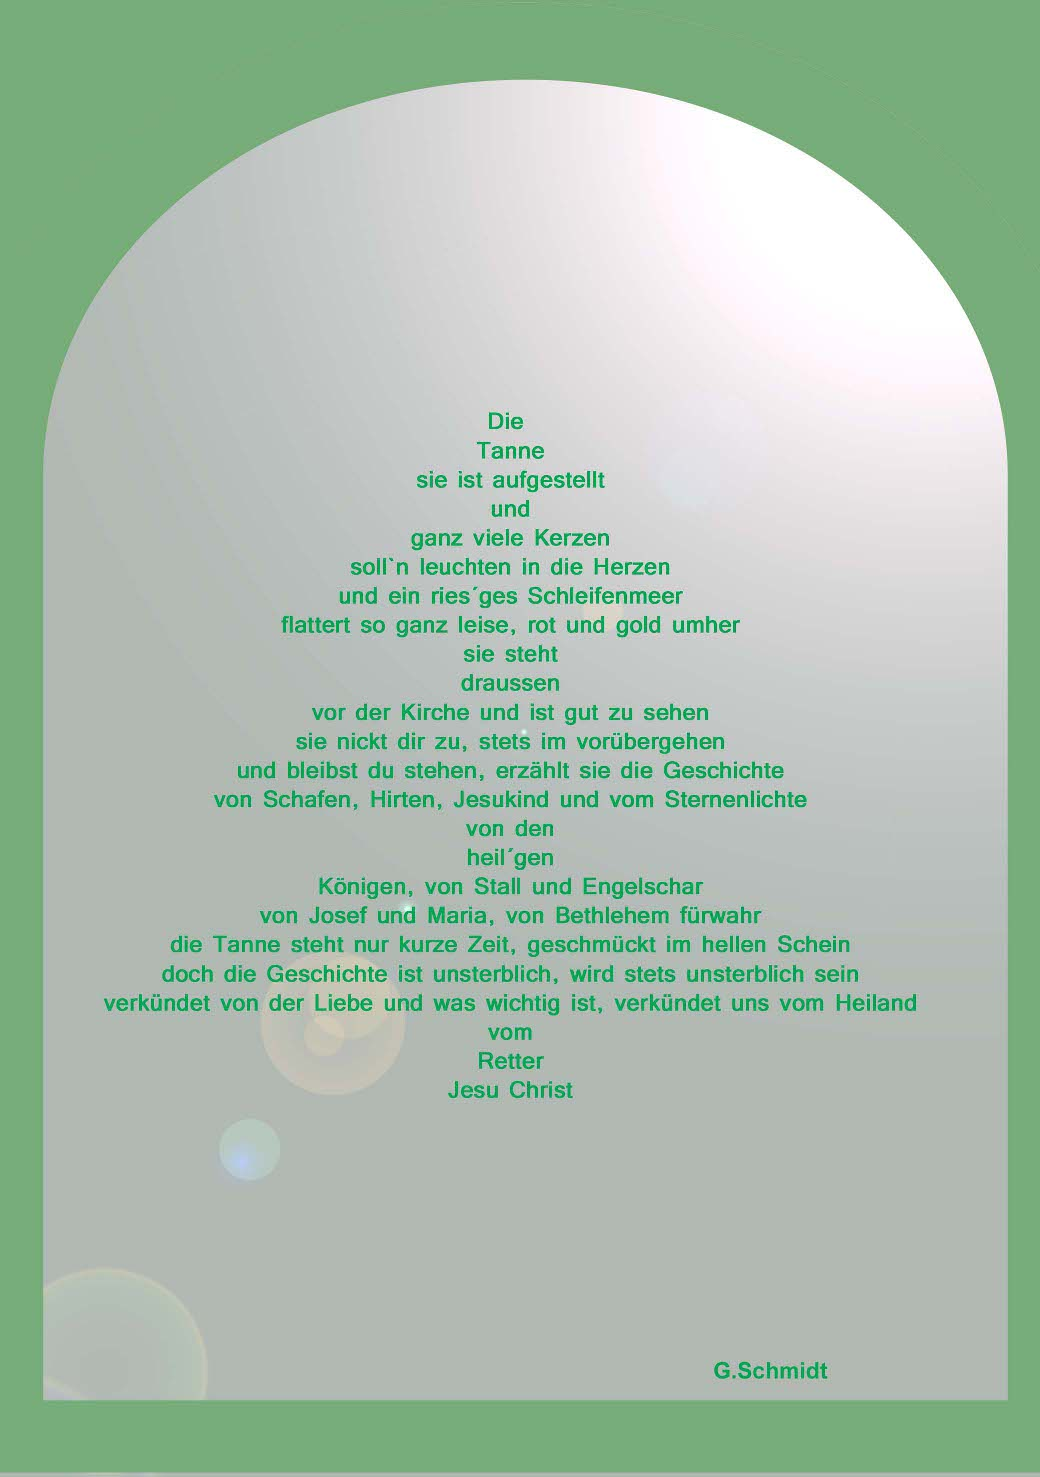 gedicht vorweihnachtszeit von gisela schmidt e stories. Black Bedroom Furniture Sets. Home Design Ideas